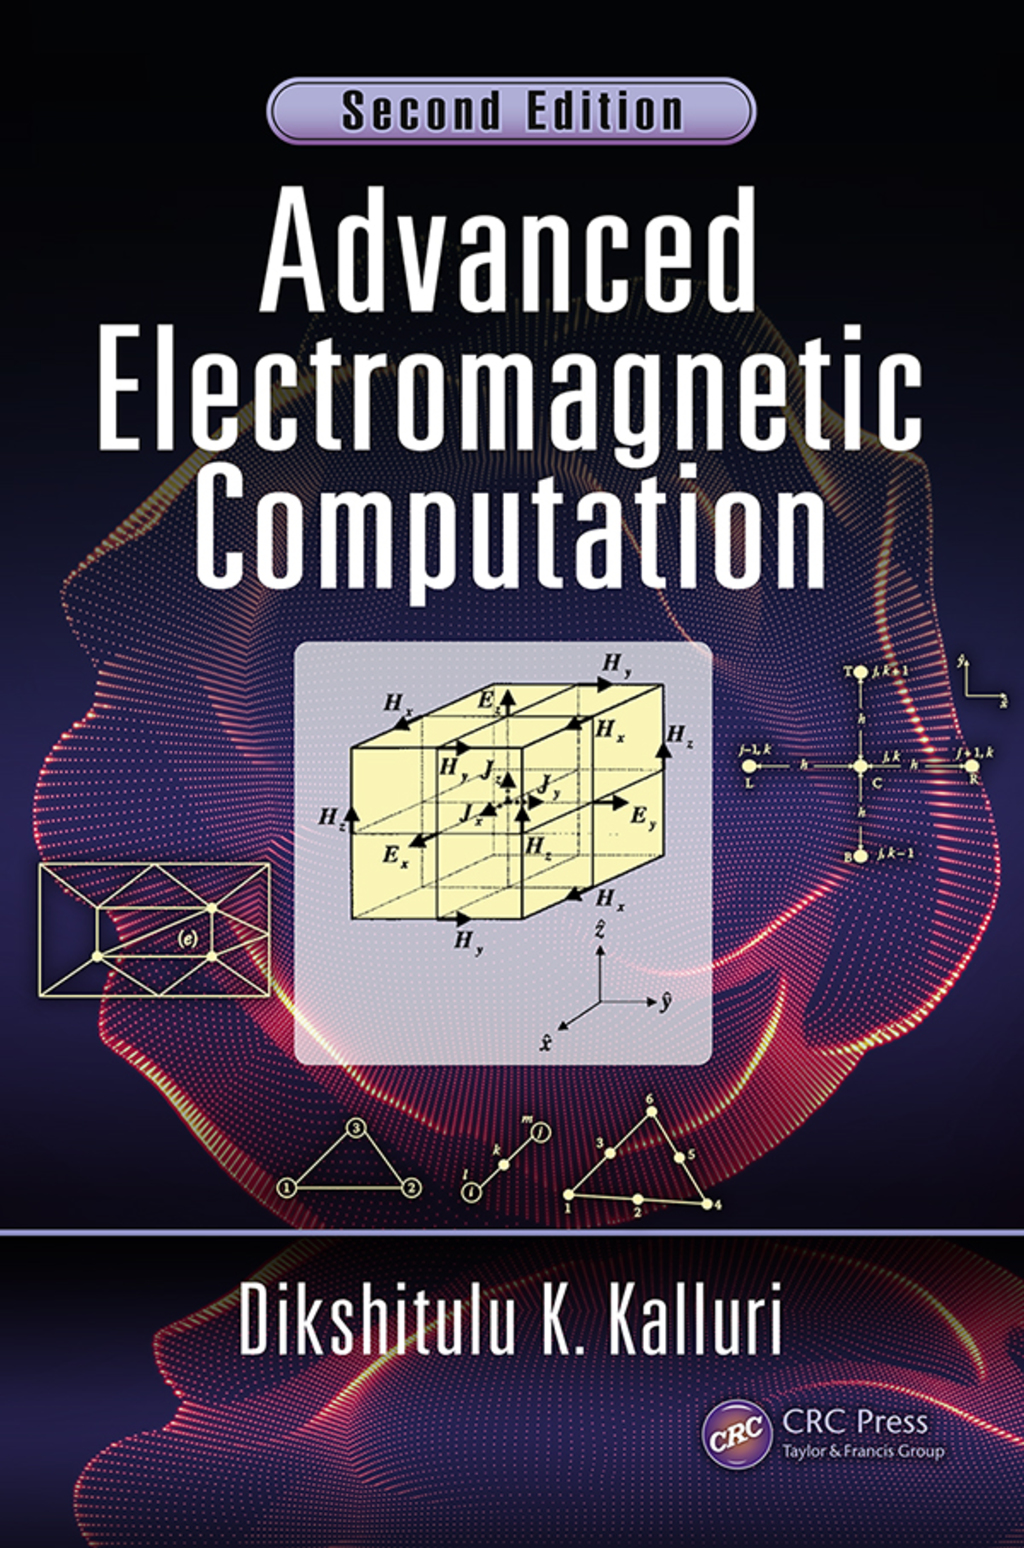 Advanced Electromagnetic Computation  Second Edition (eBook Rental)